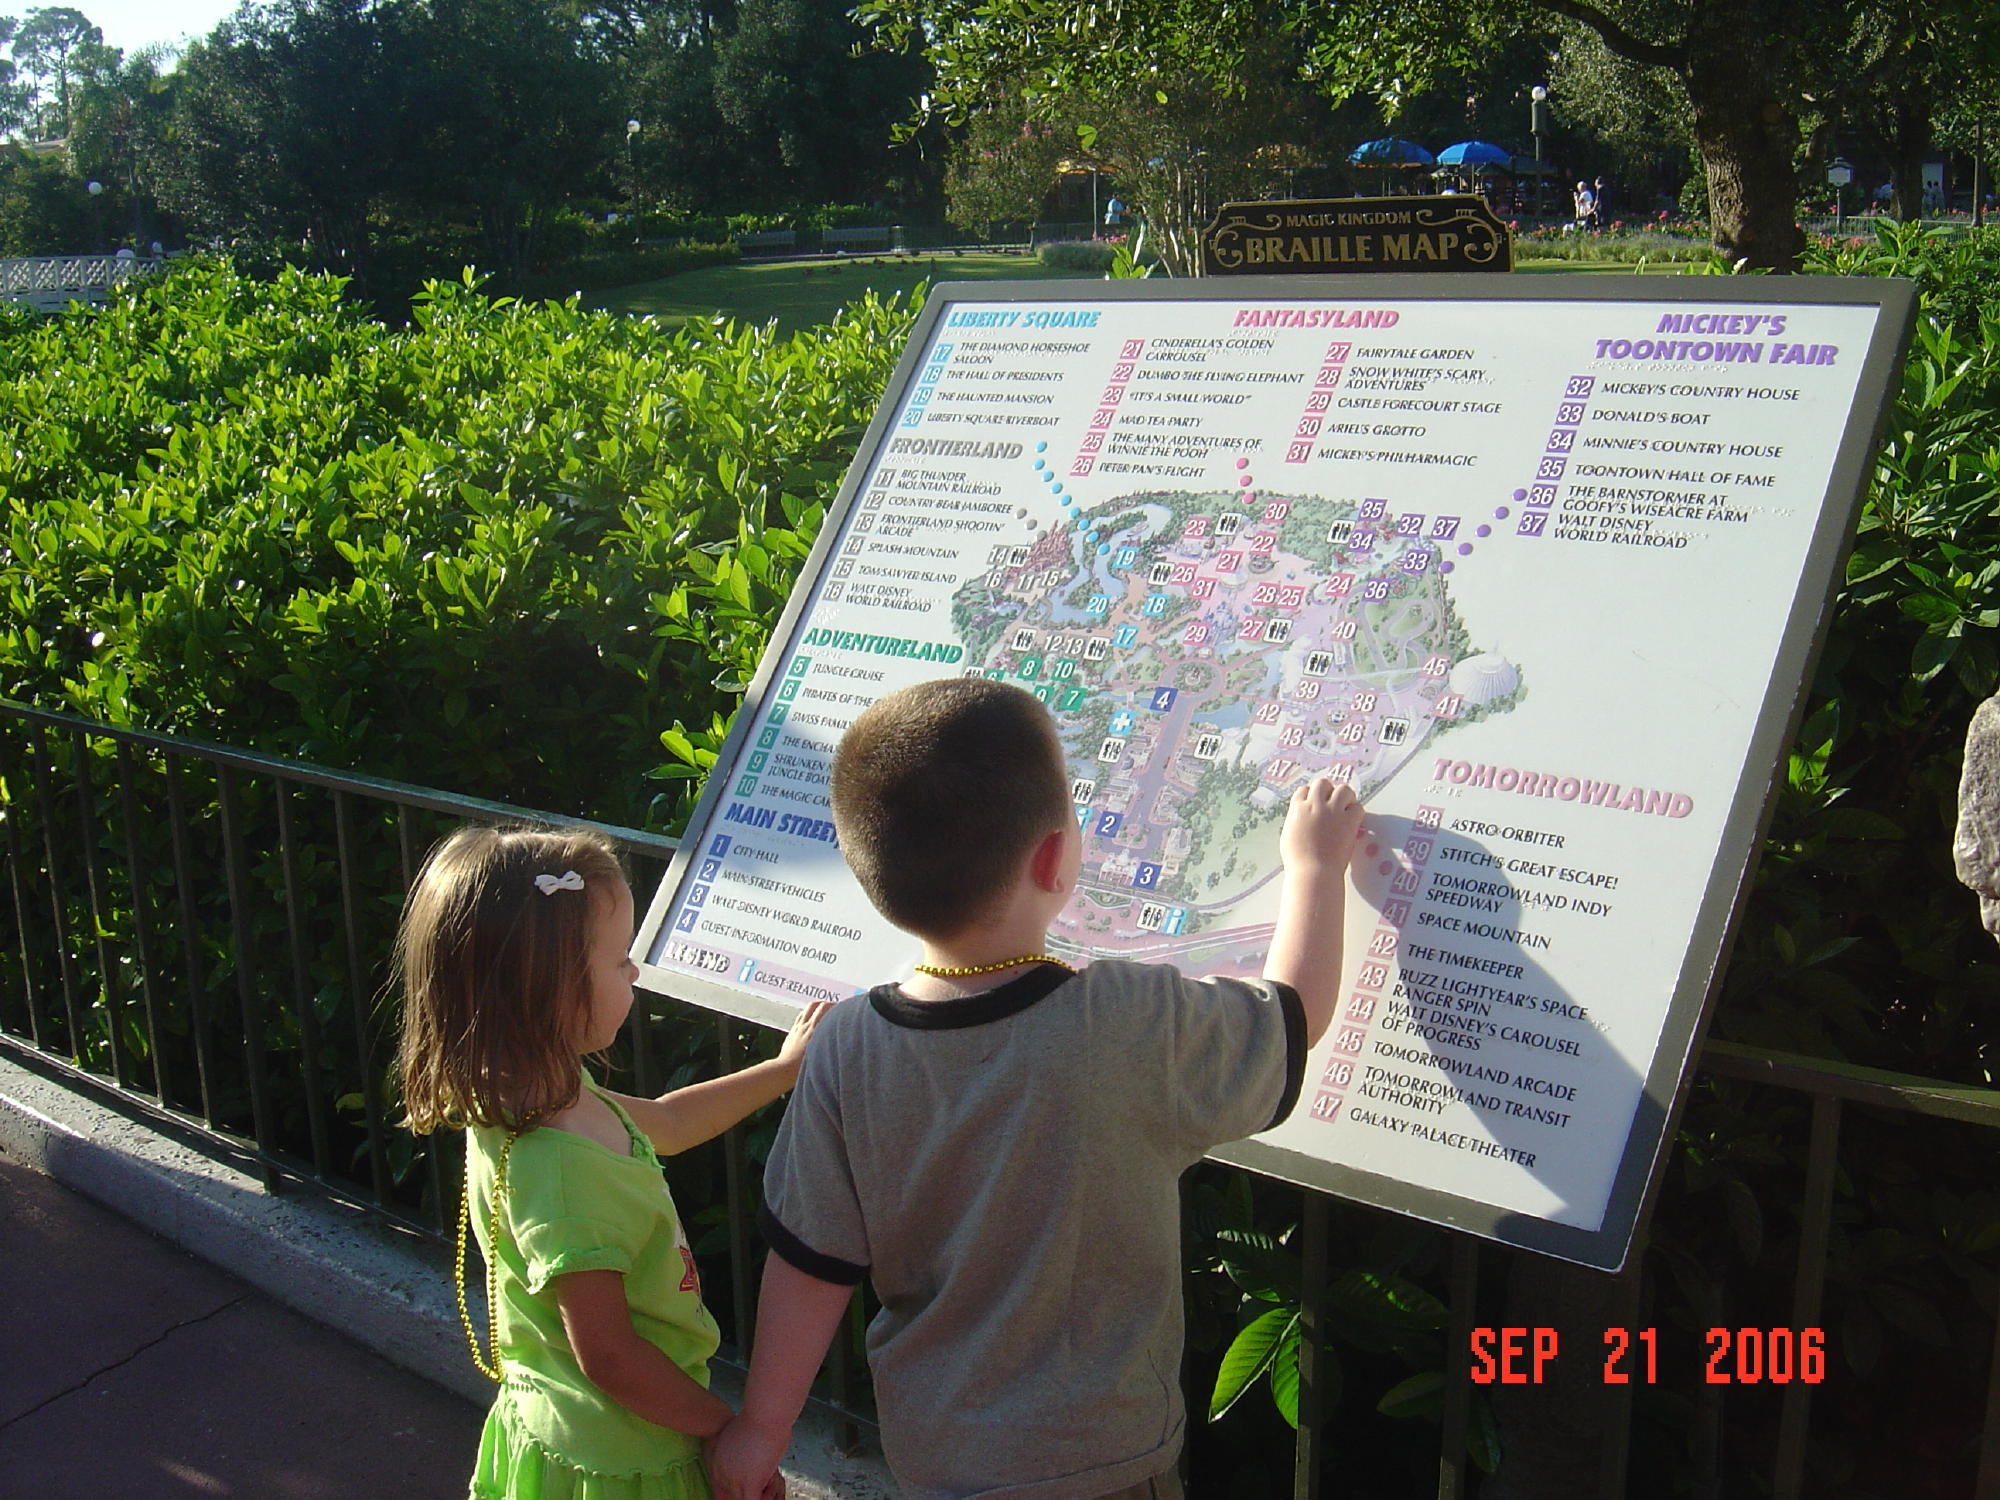 Magic Kingdom - Map of the Park